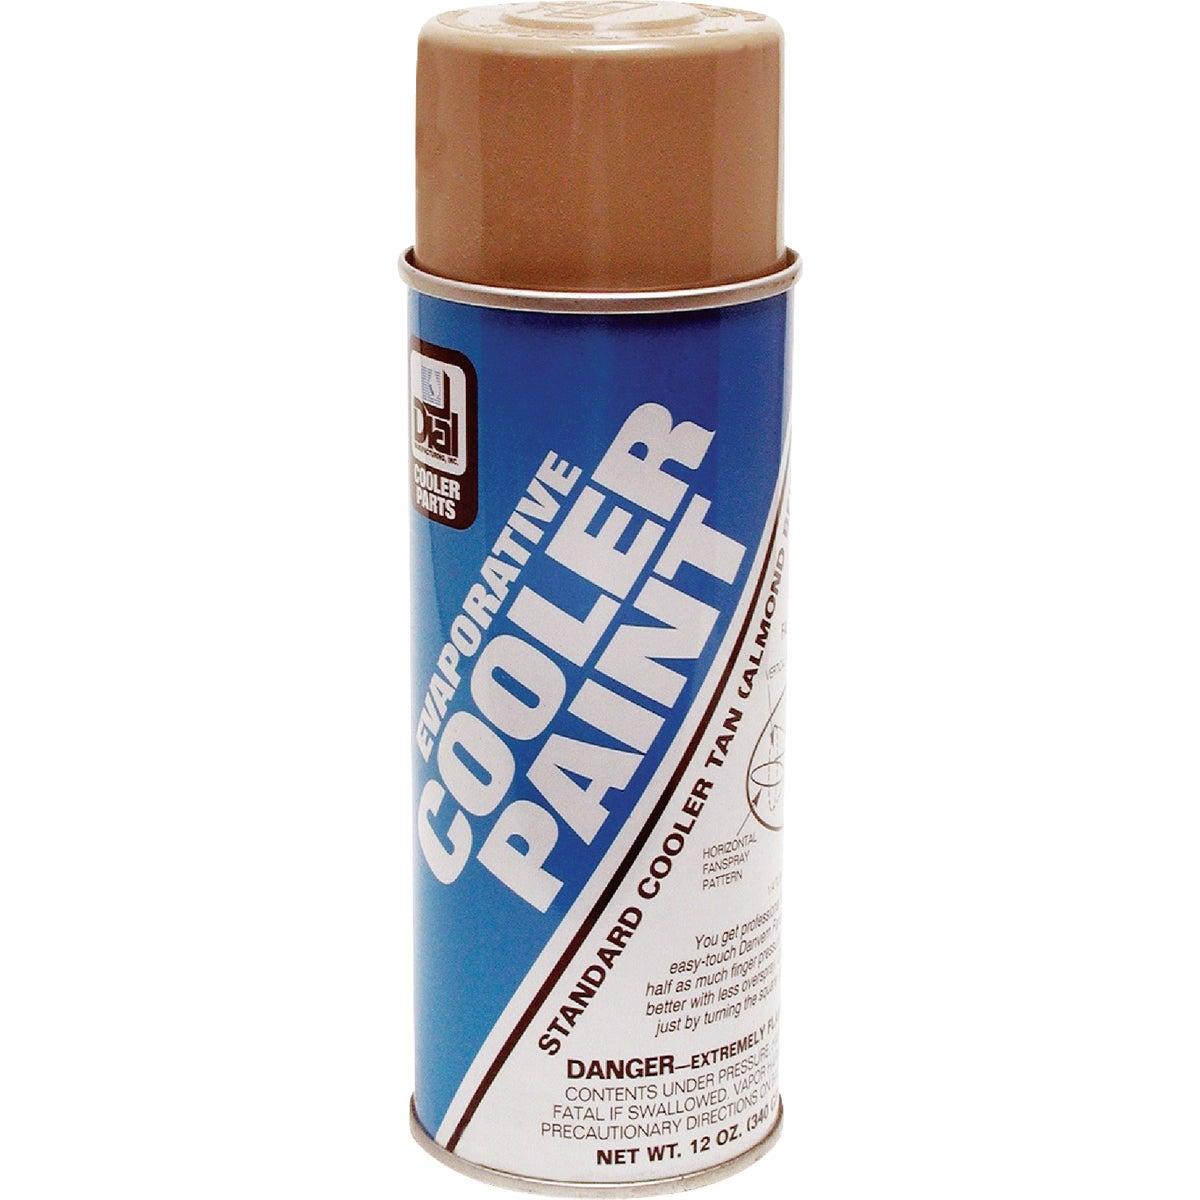 12OZ TAN SPRAY PAINT - 5623 by Dial Manufacturing